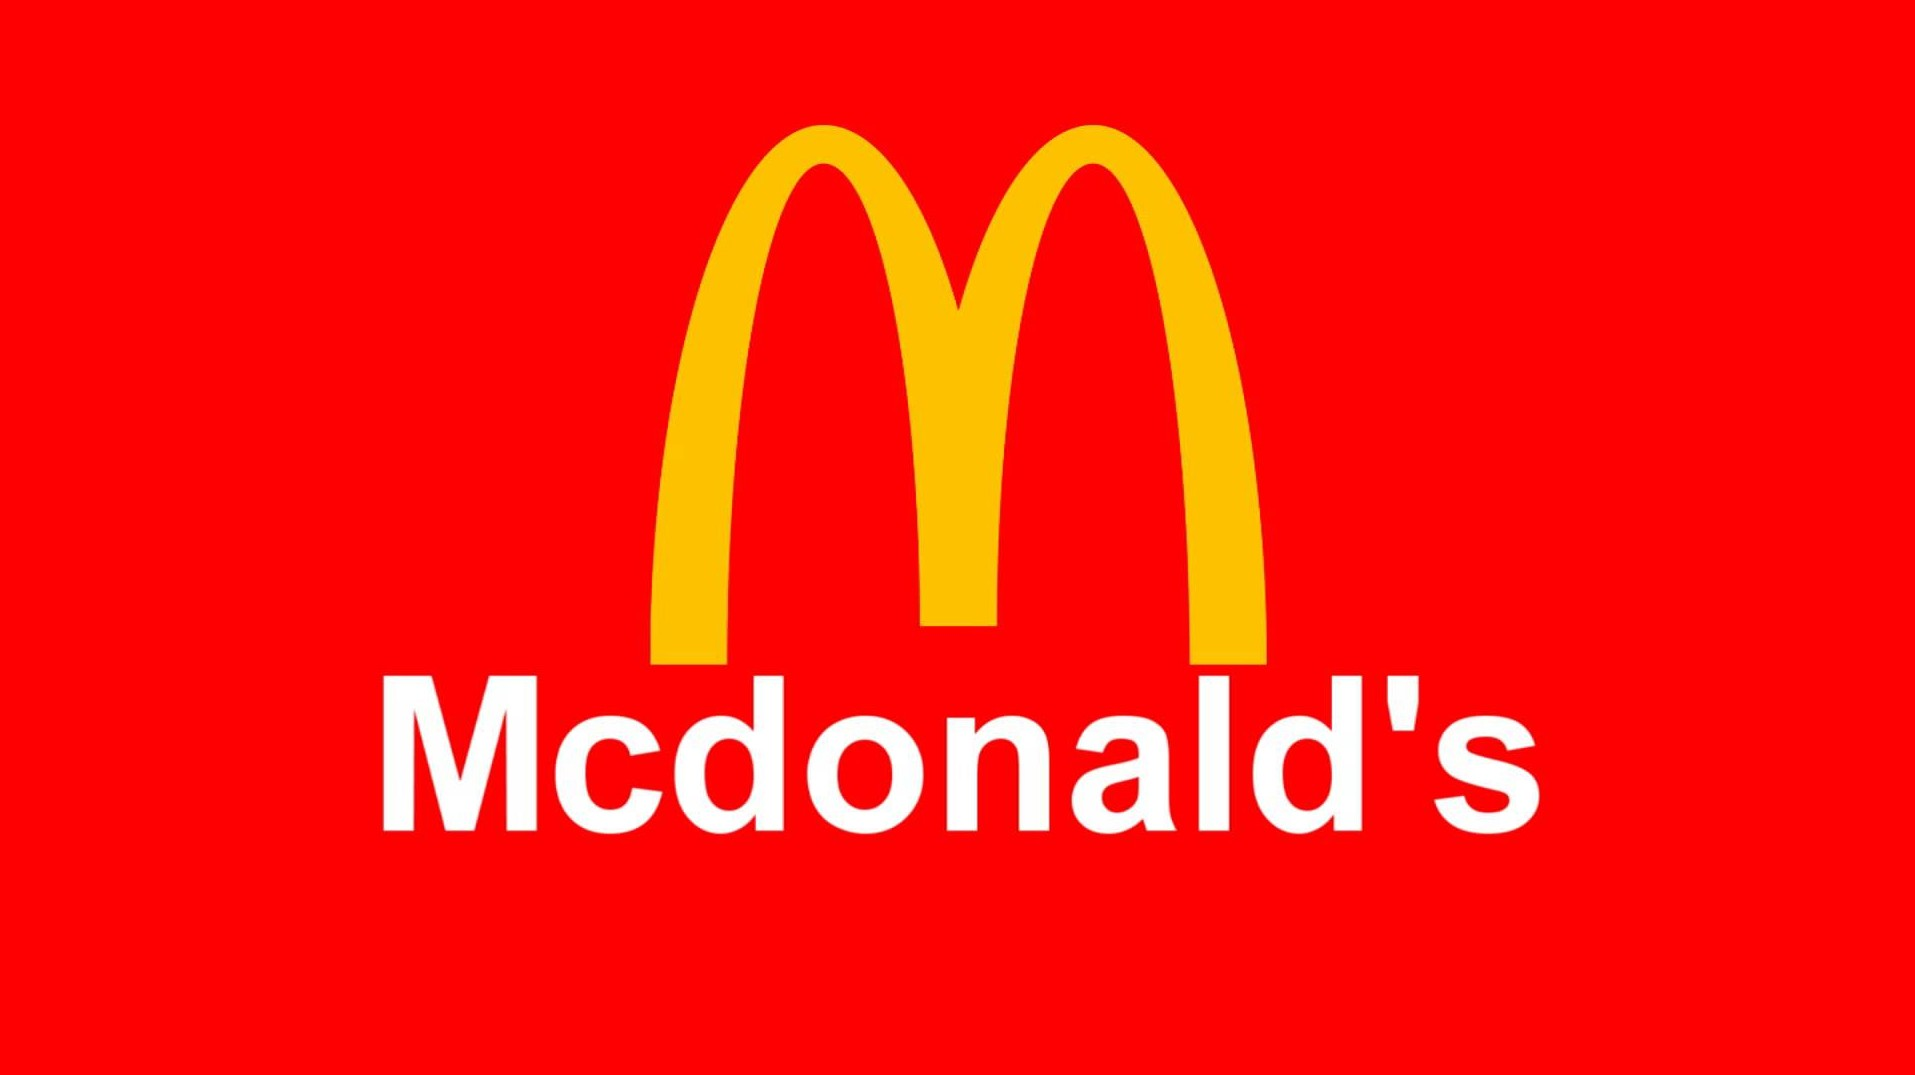 """By clicking """"Sign Up"""" I confirm that I have read and agree to the PDPA Consent for McDonald's & I have my parent's/legal guardian's consent if I am below 18 years of age."""